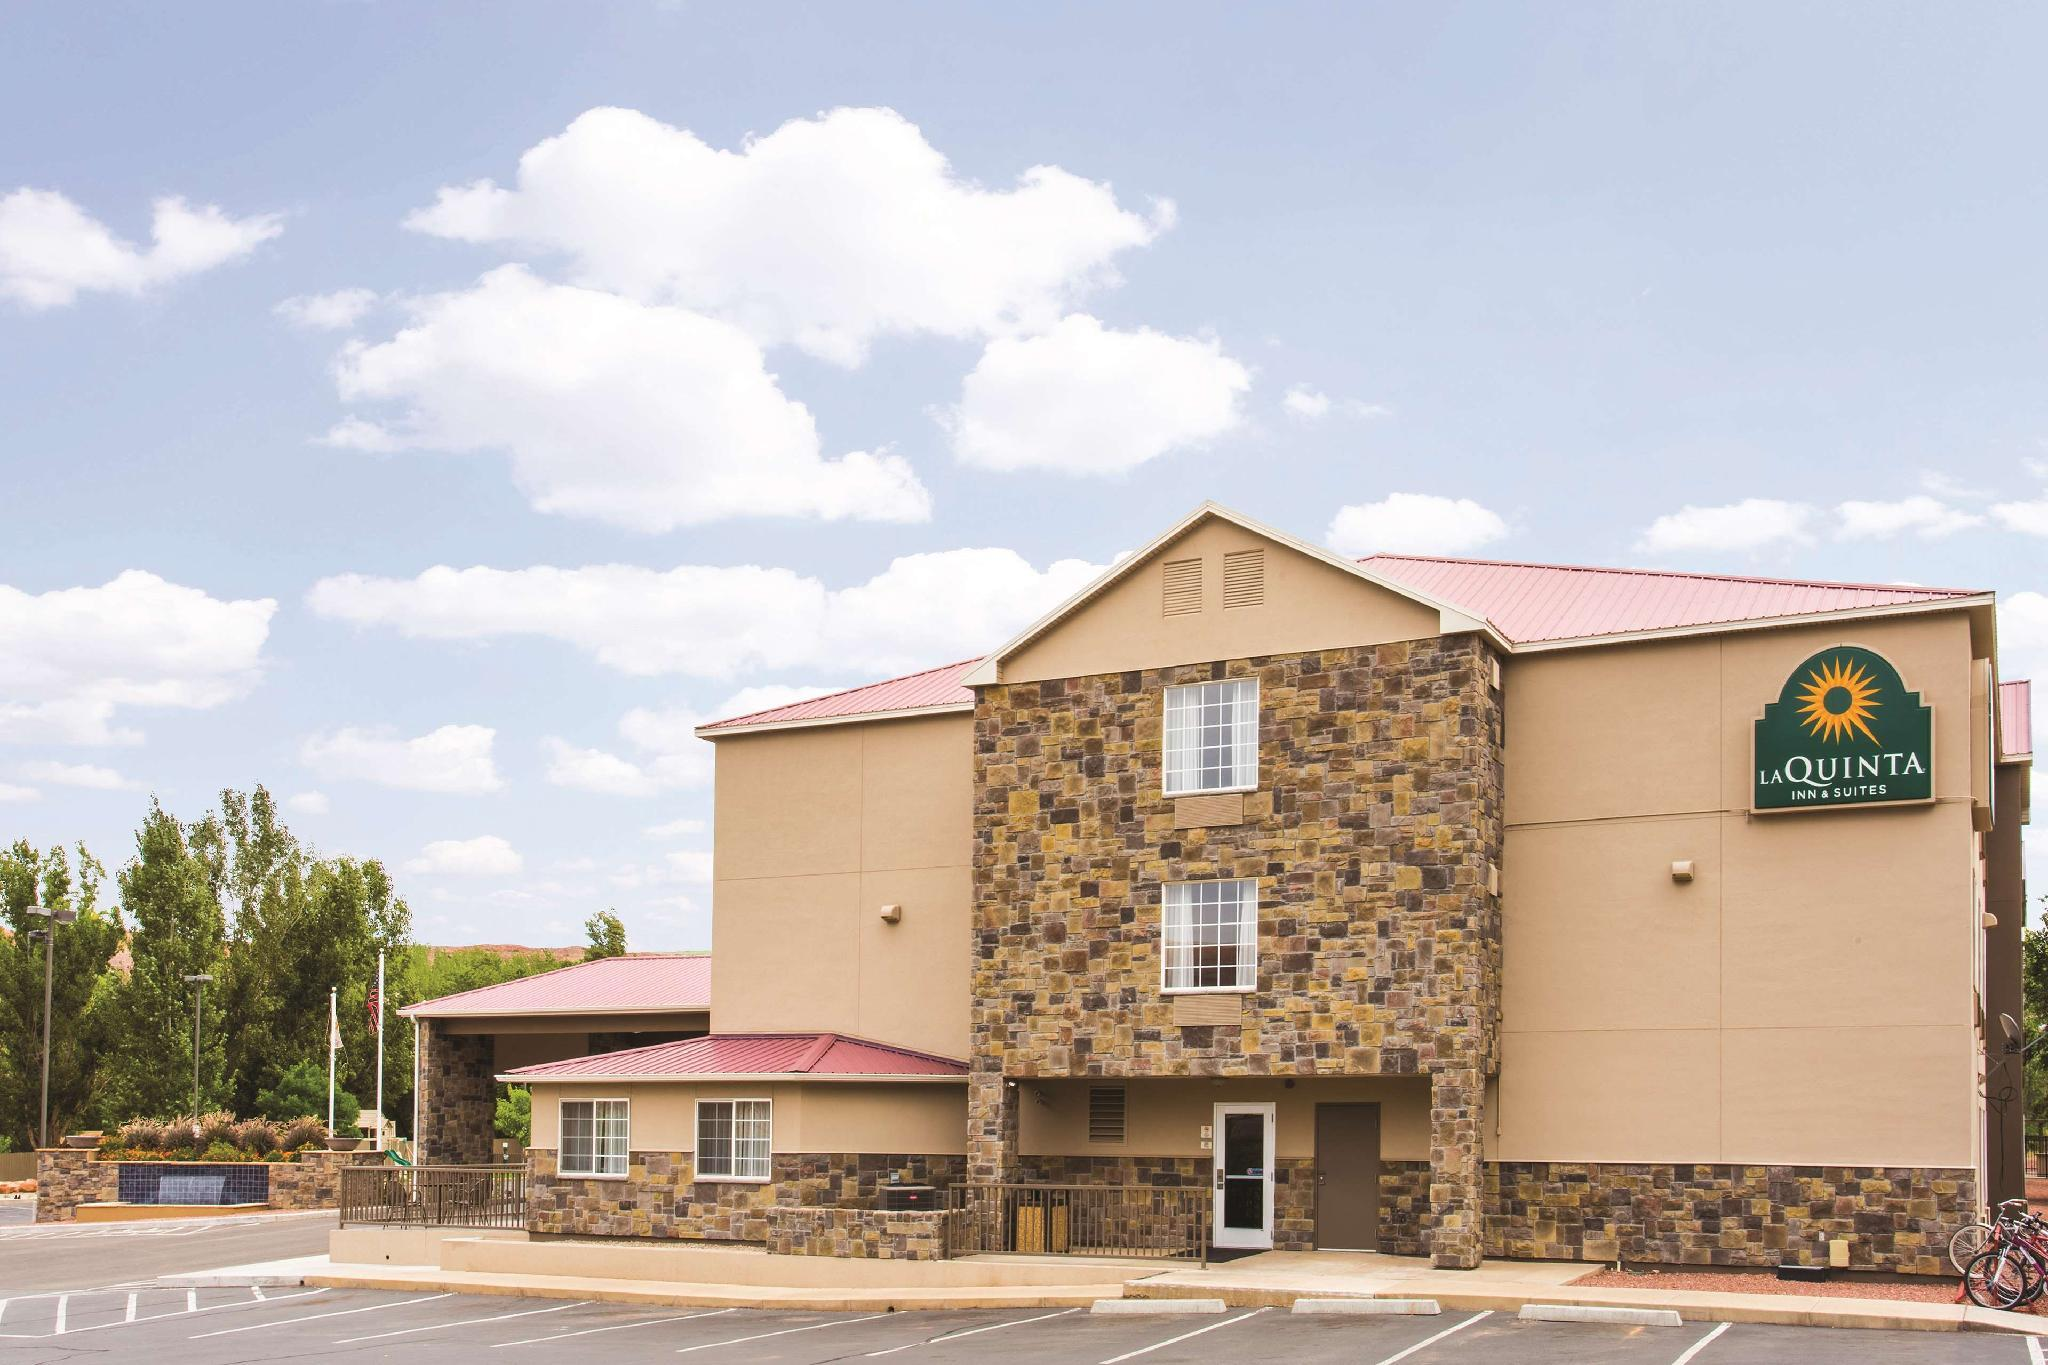 La Quinta Inn And Suites By Wyndham Moab